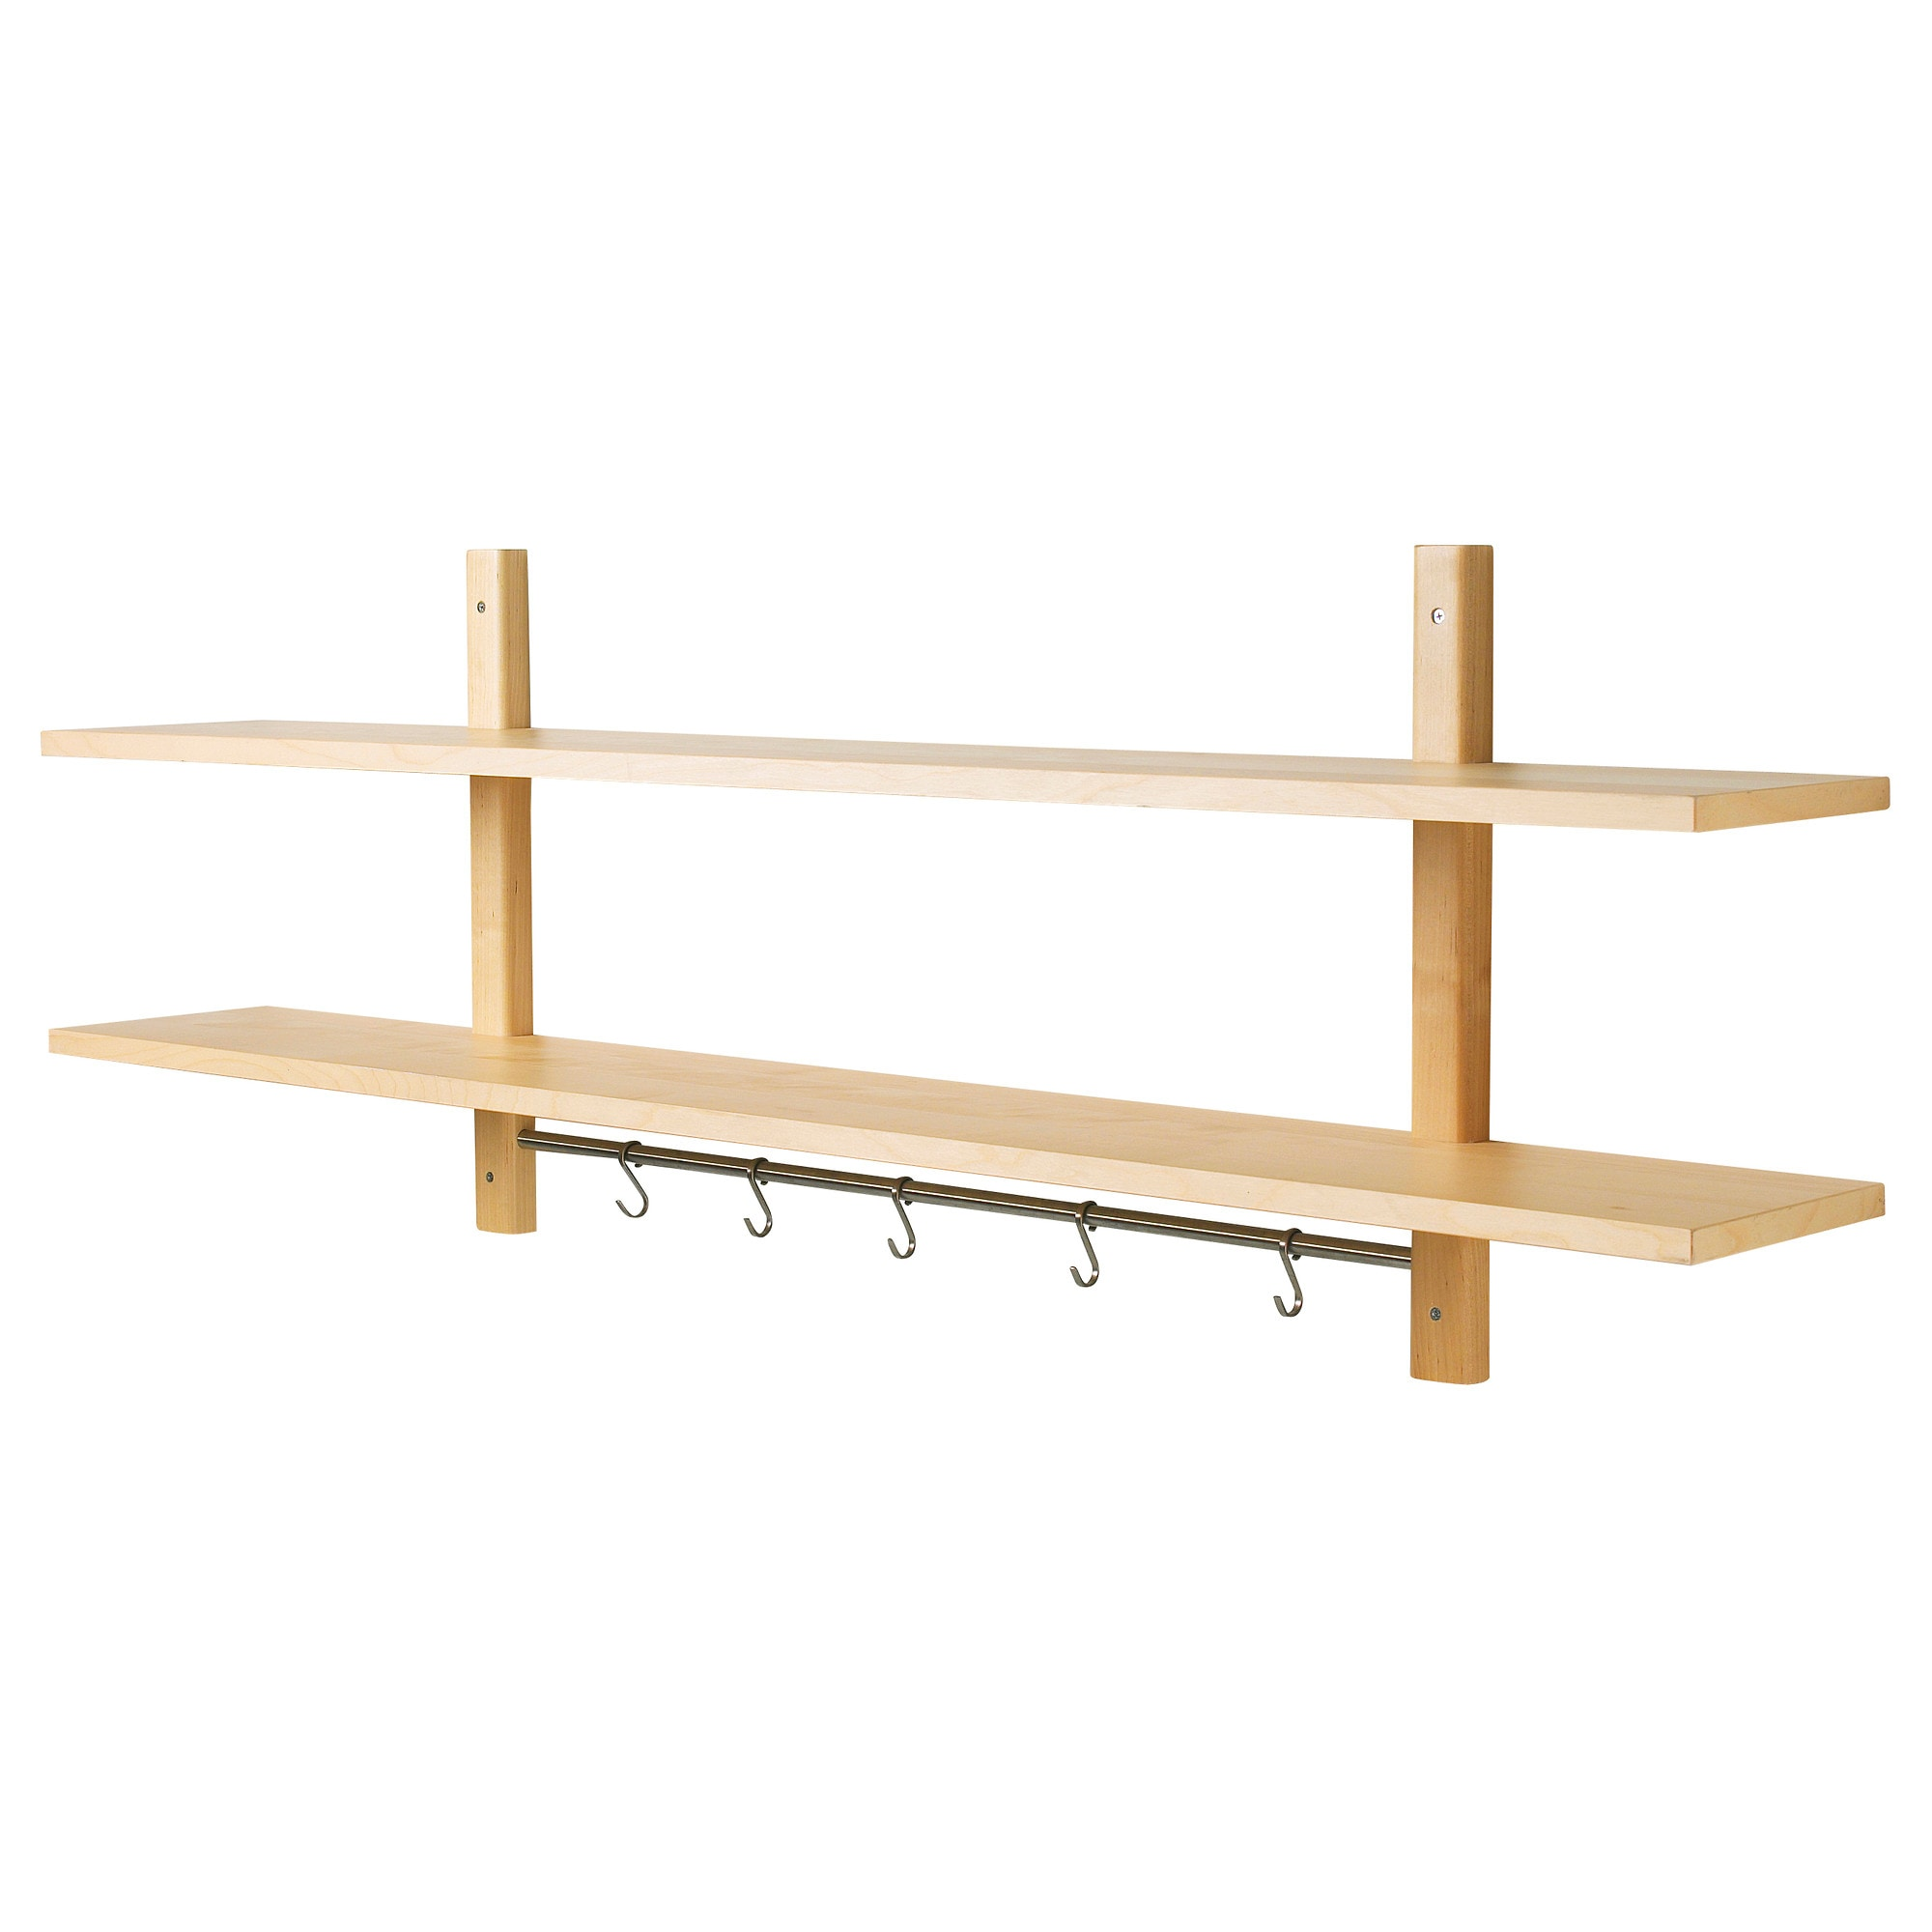 Ikea varde wall kitchen shelf with 5 hooks solid birch ebay - Porte essuie tout mural ikea ...